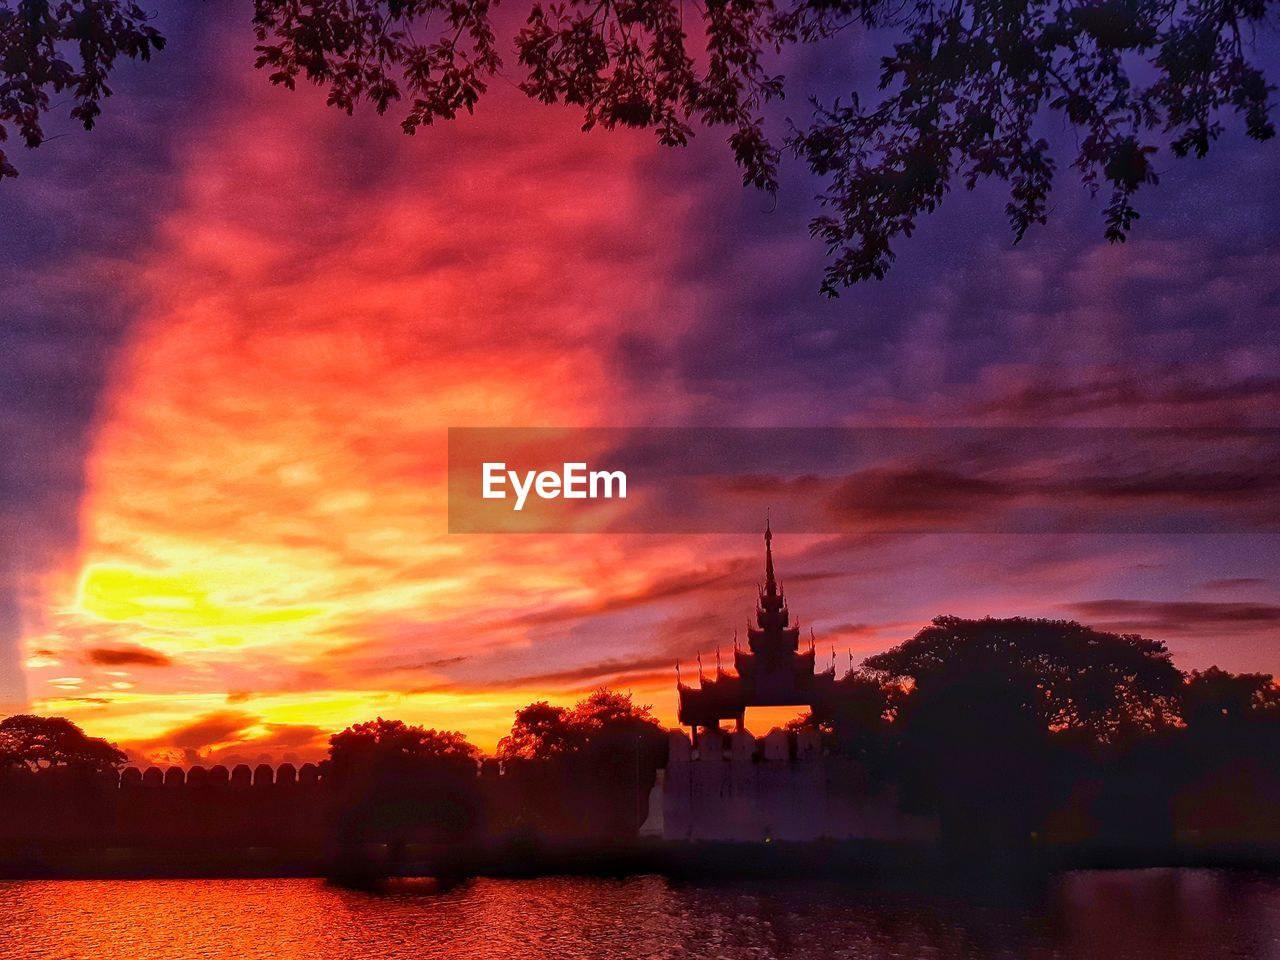 sunset, sky, cloud - sky, architecture, built structure, water, tree, building exterior, nature, orange color, silhouette, plant, no people, building, beauty in nature, waterfront, belief, religion, place of worship, outdoors, spire, romantic sky